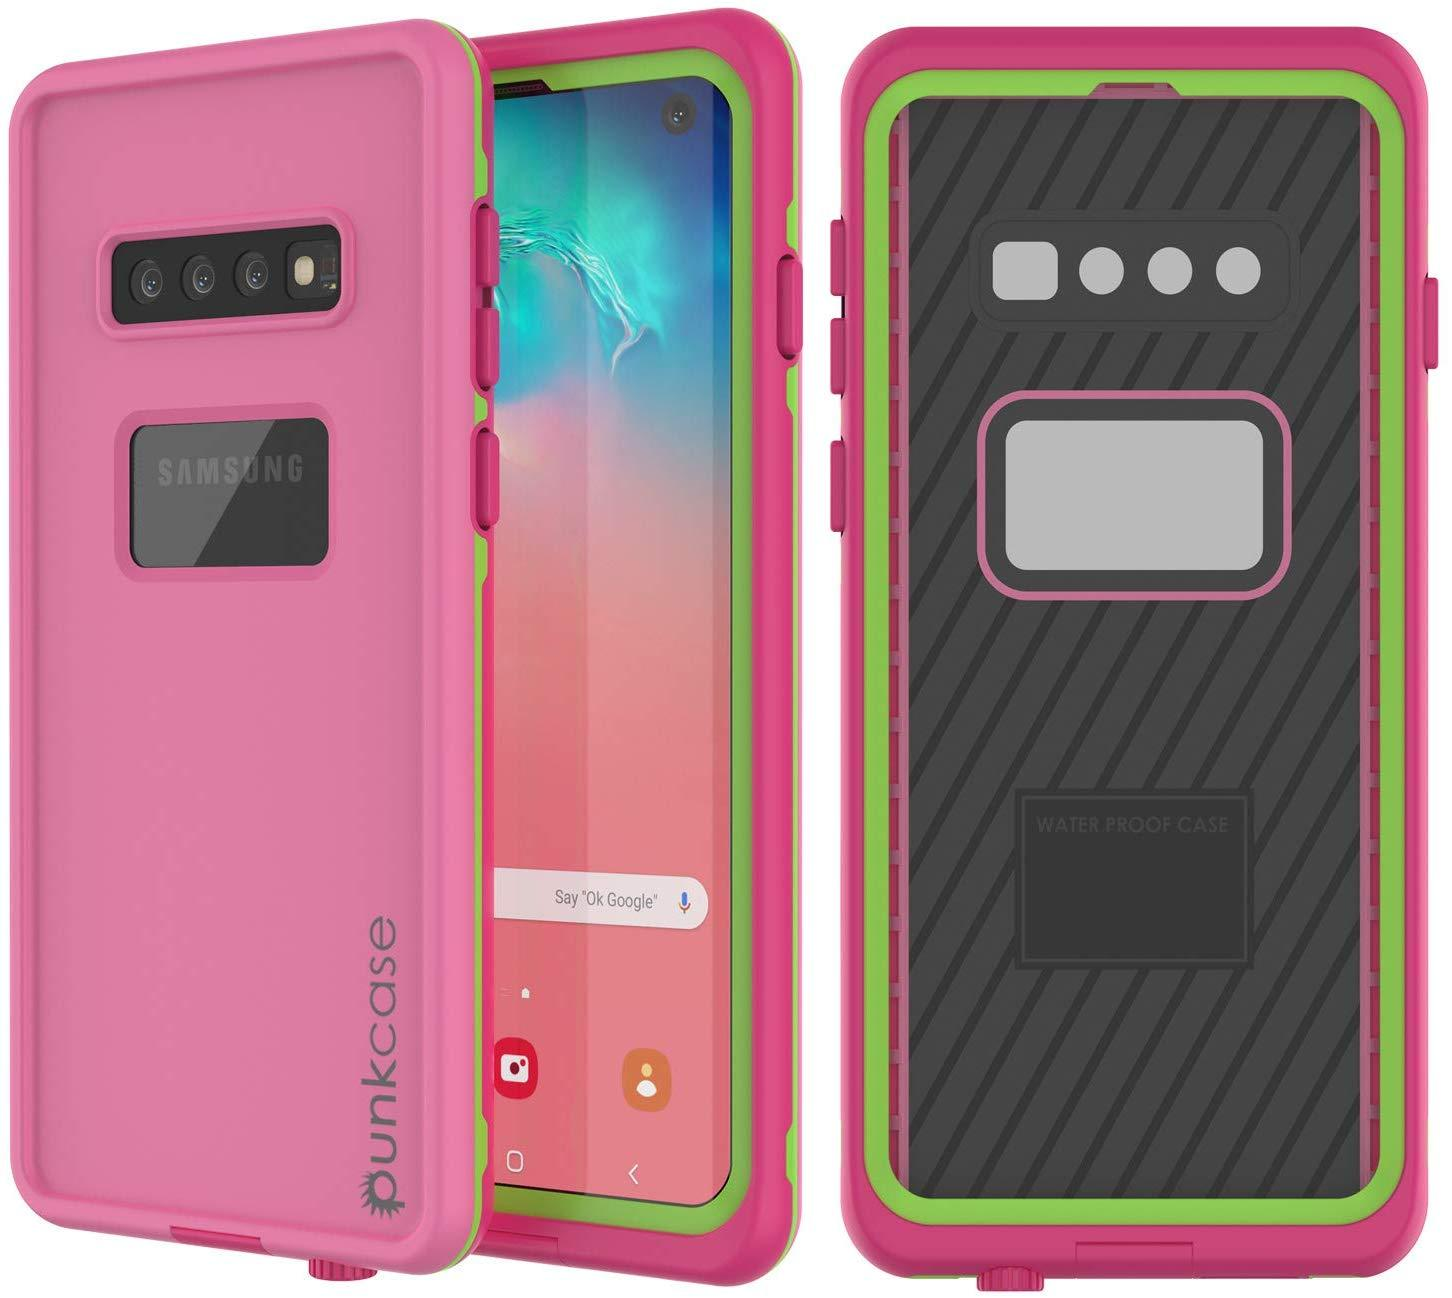 Punkcase S10 Waterproof Case [Aqua Series] Armor Cover [Pink]